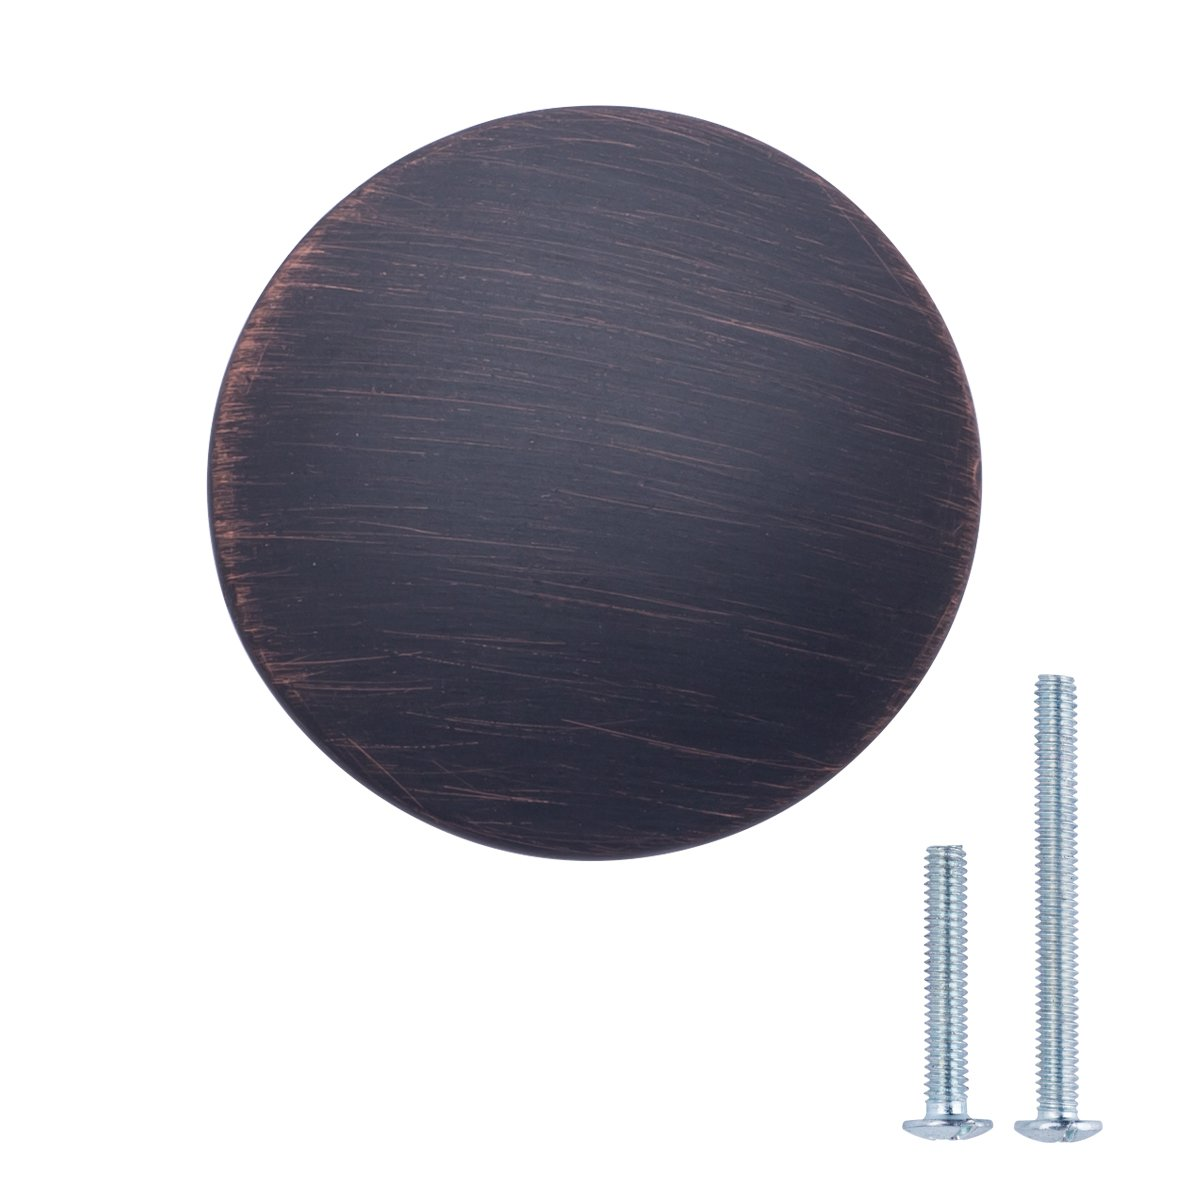 "AmazonBasics (AB600-OR-25) Round Flat Cabinet Knob, 1.37"" Diameter, Oil Rubbed Bronze, 25-Pack"